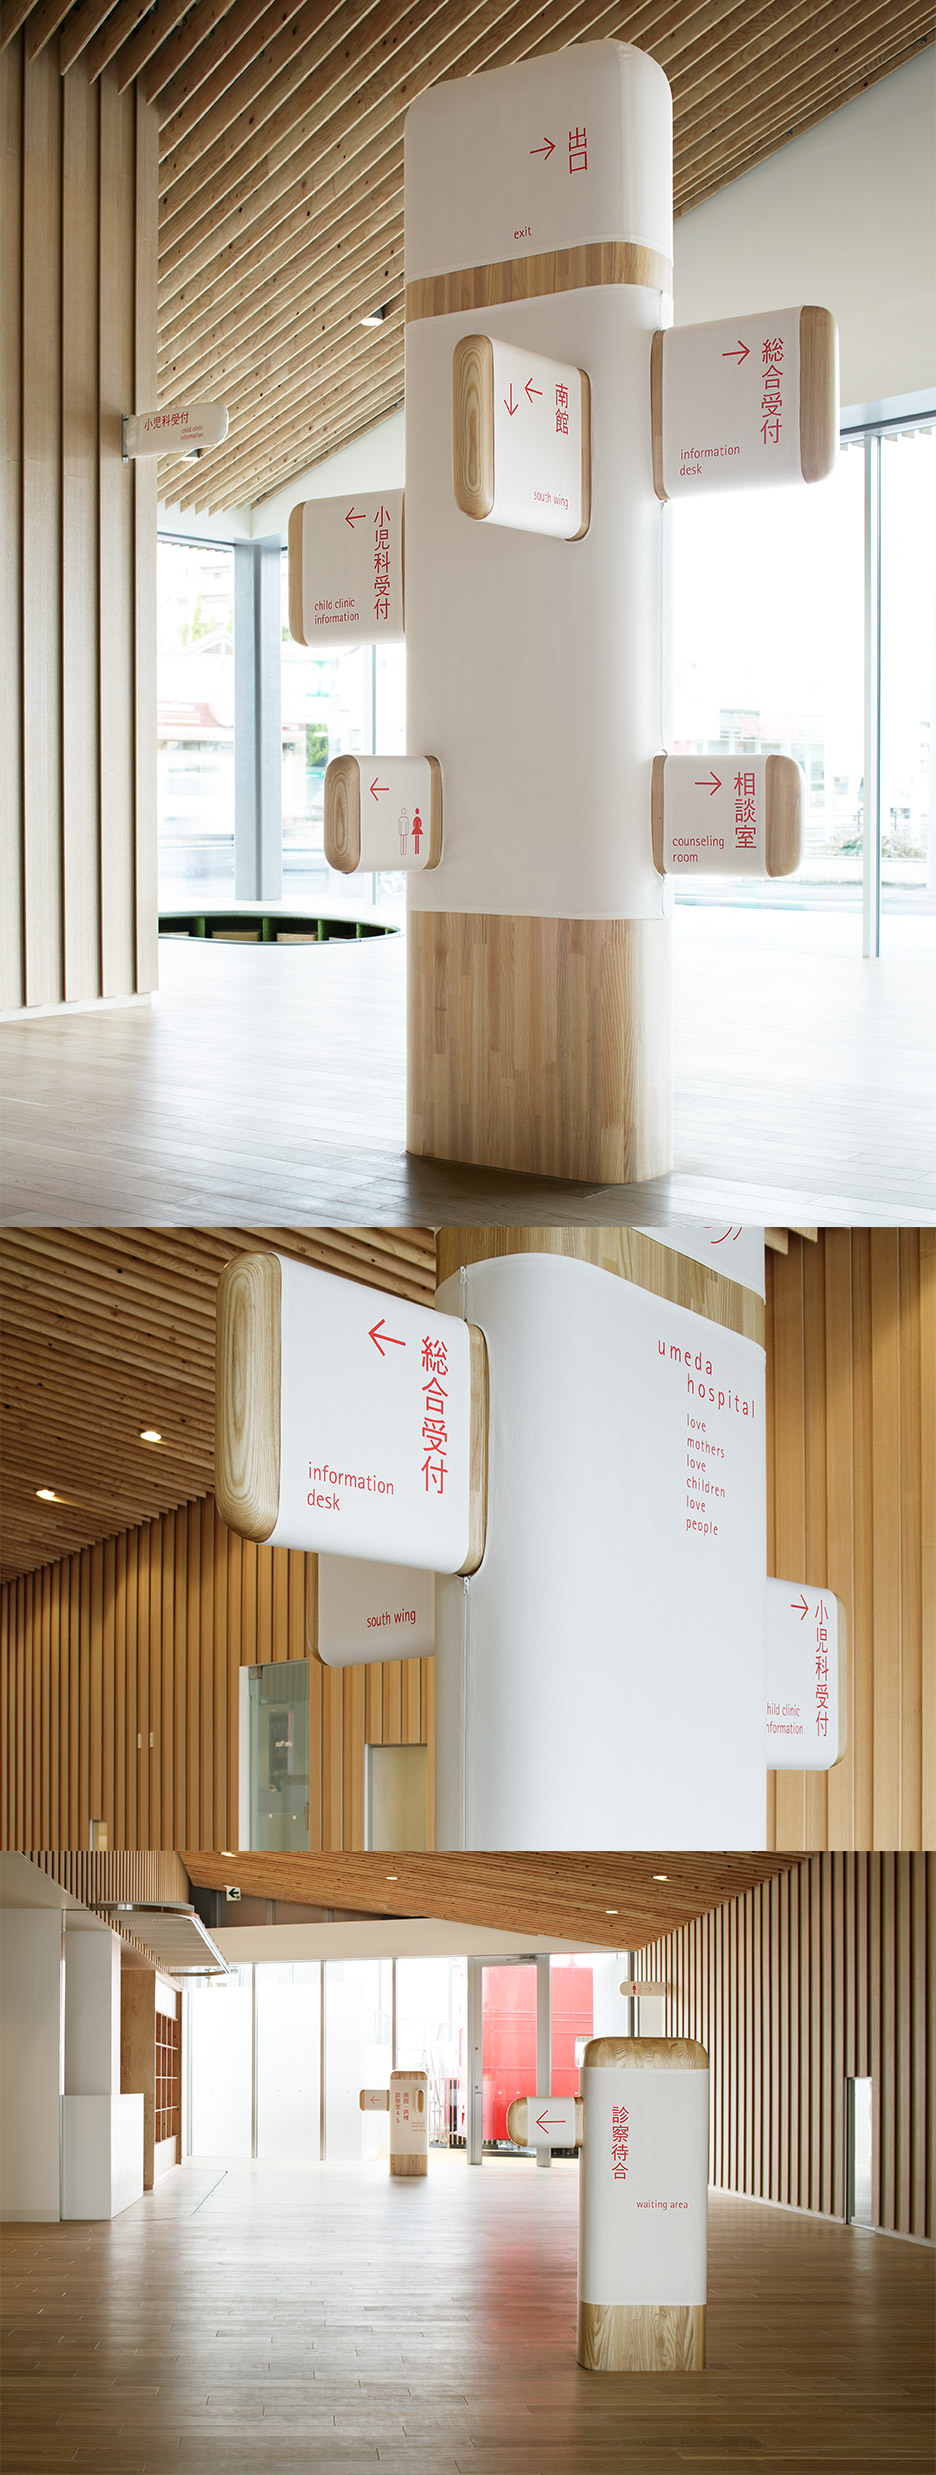 New generation of signage is born to Umeda Hospital | NEWS ...